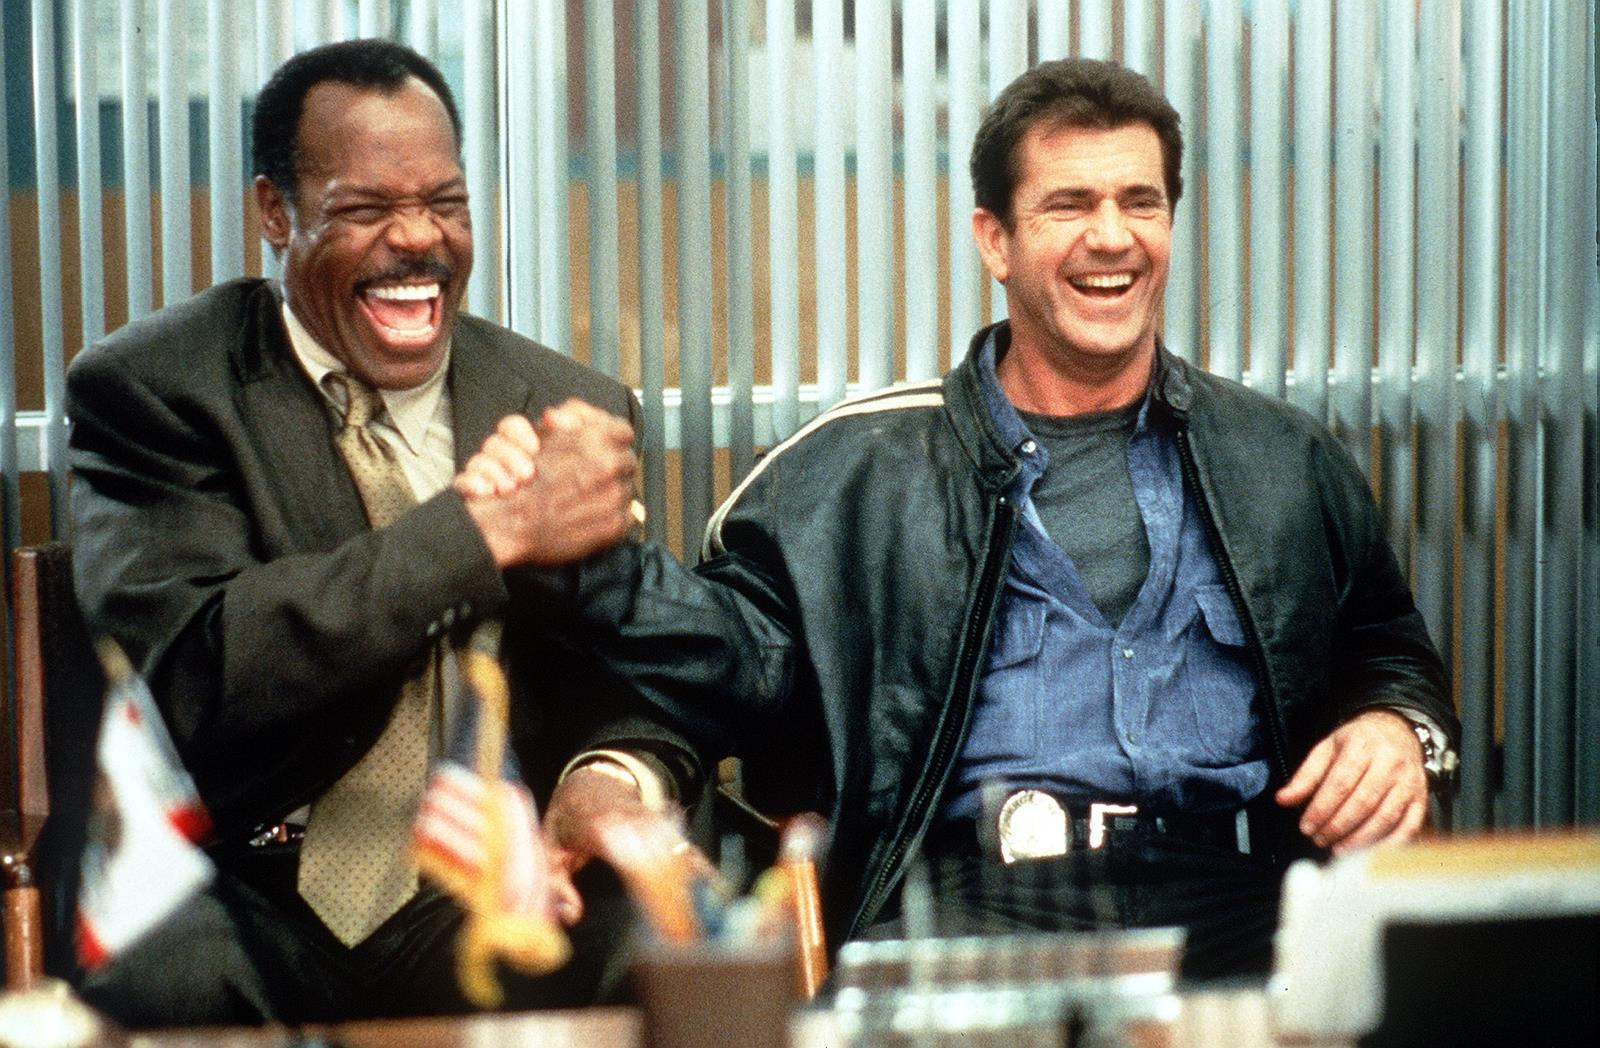 lethal_weapon_4_4.jpg